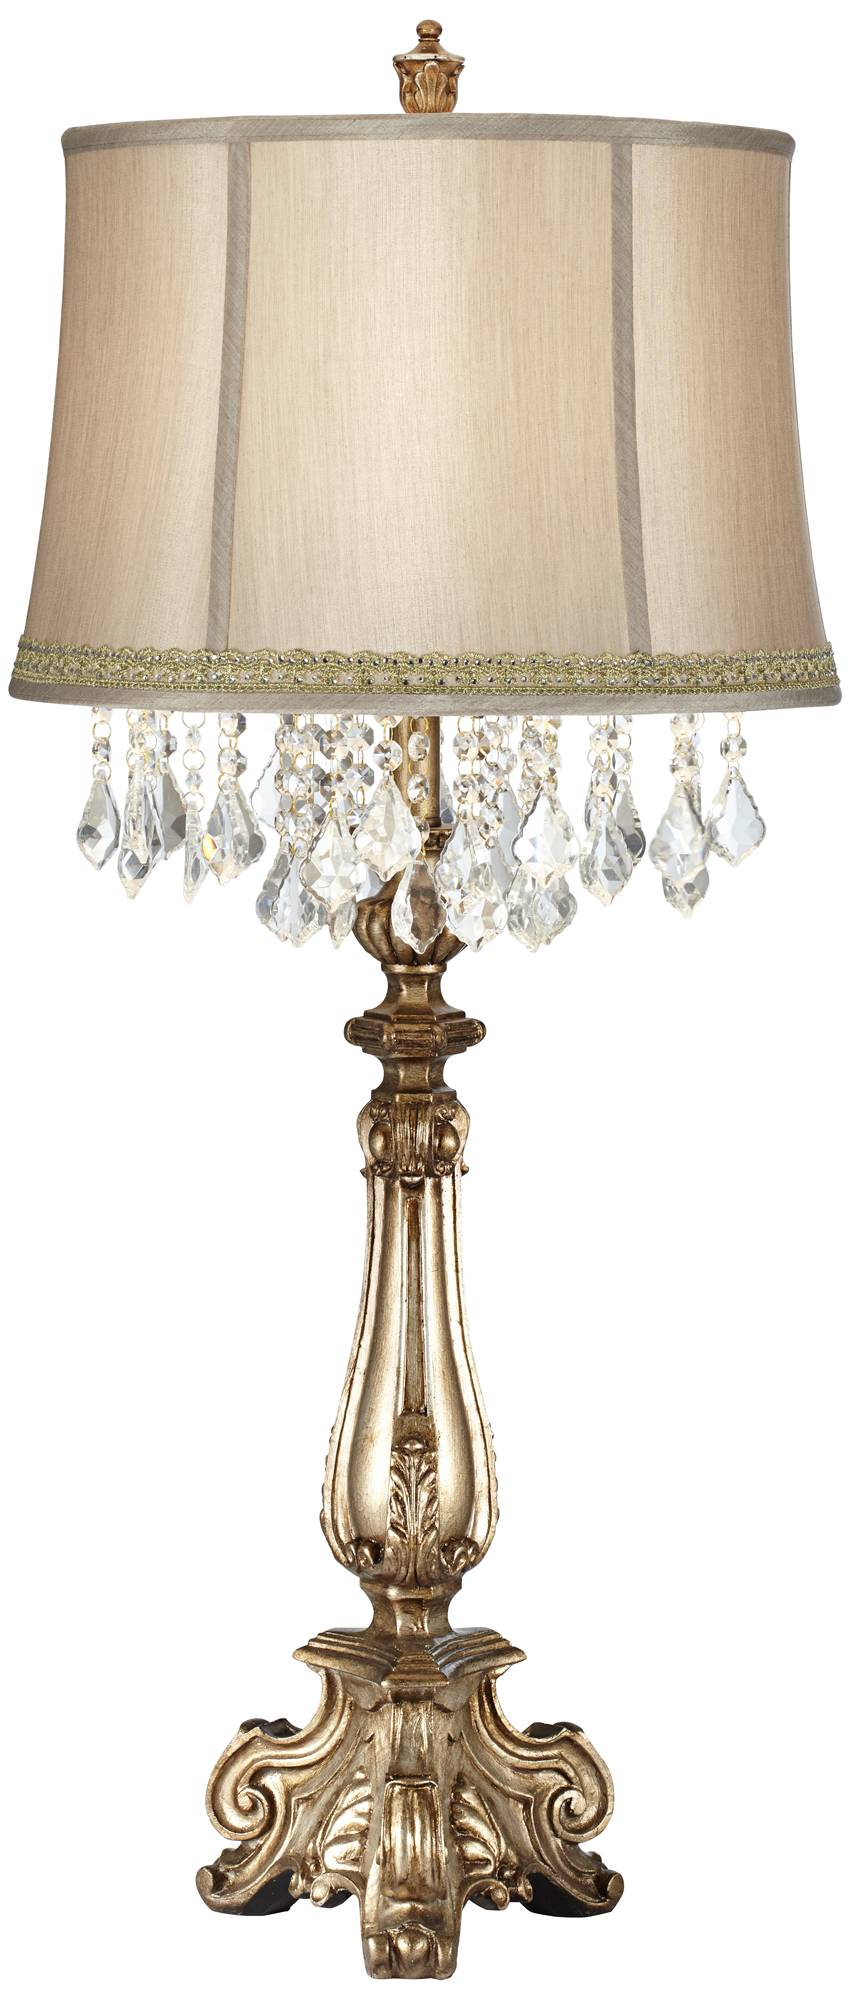 Dubois console table lamp with lace rhinestone trim